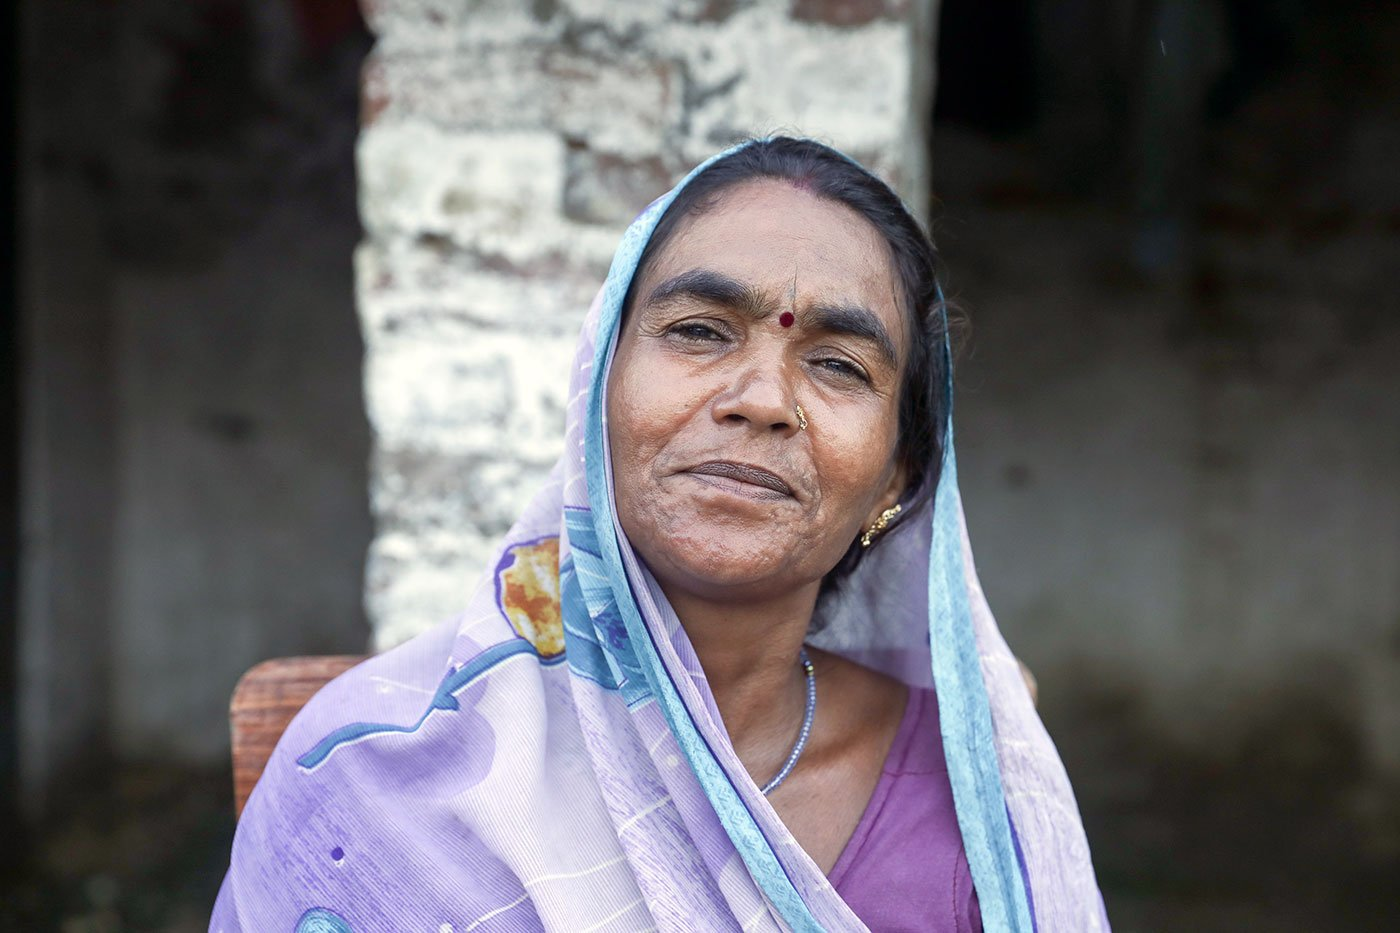 Lalmati Devi, 51, discontinued treatment as she found it physically uncomfortable